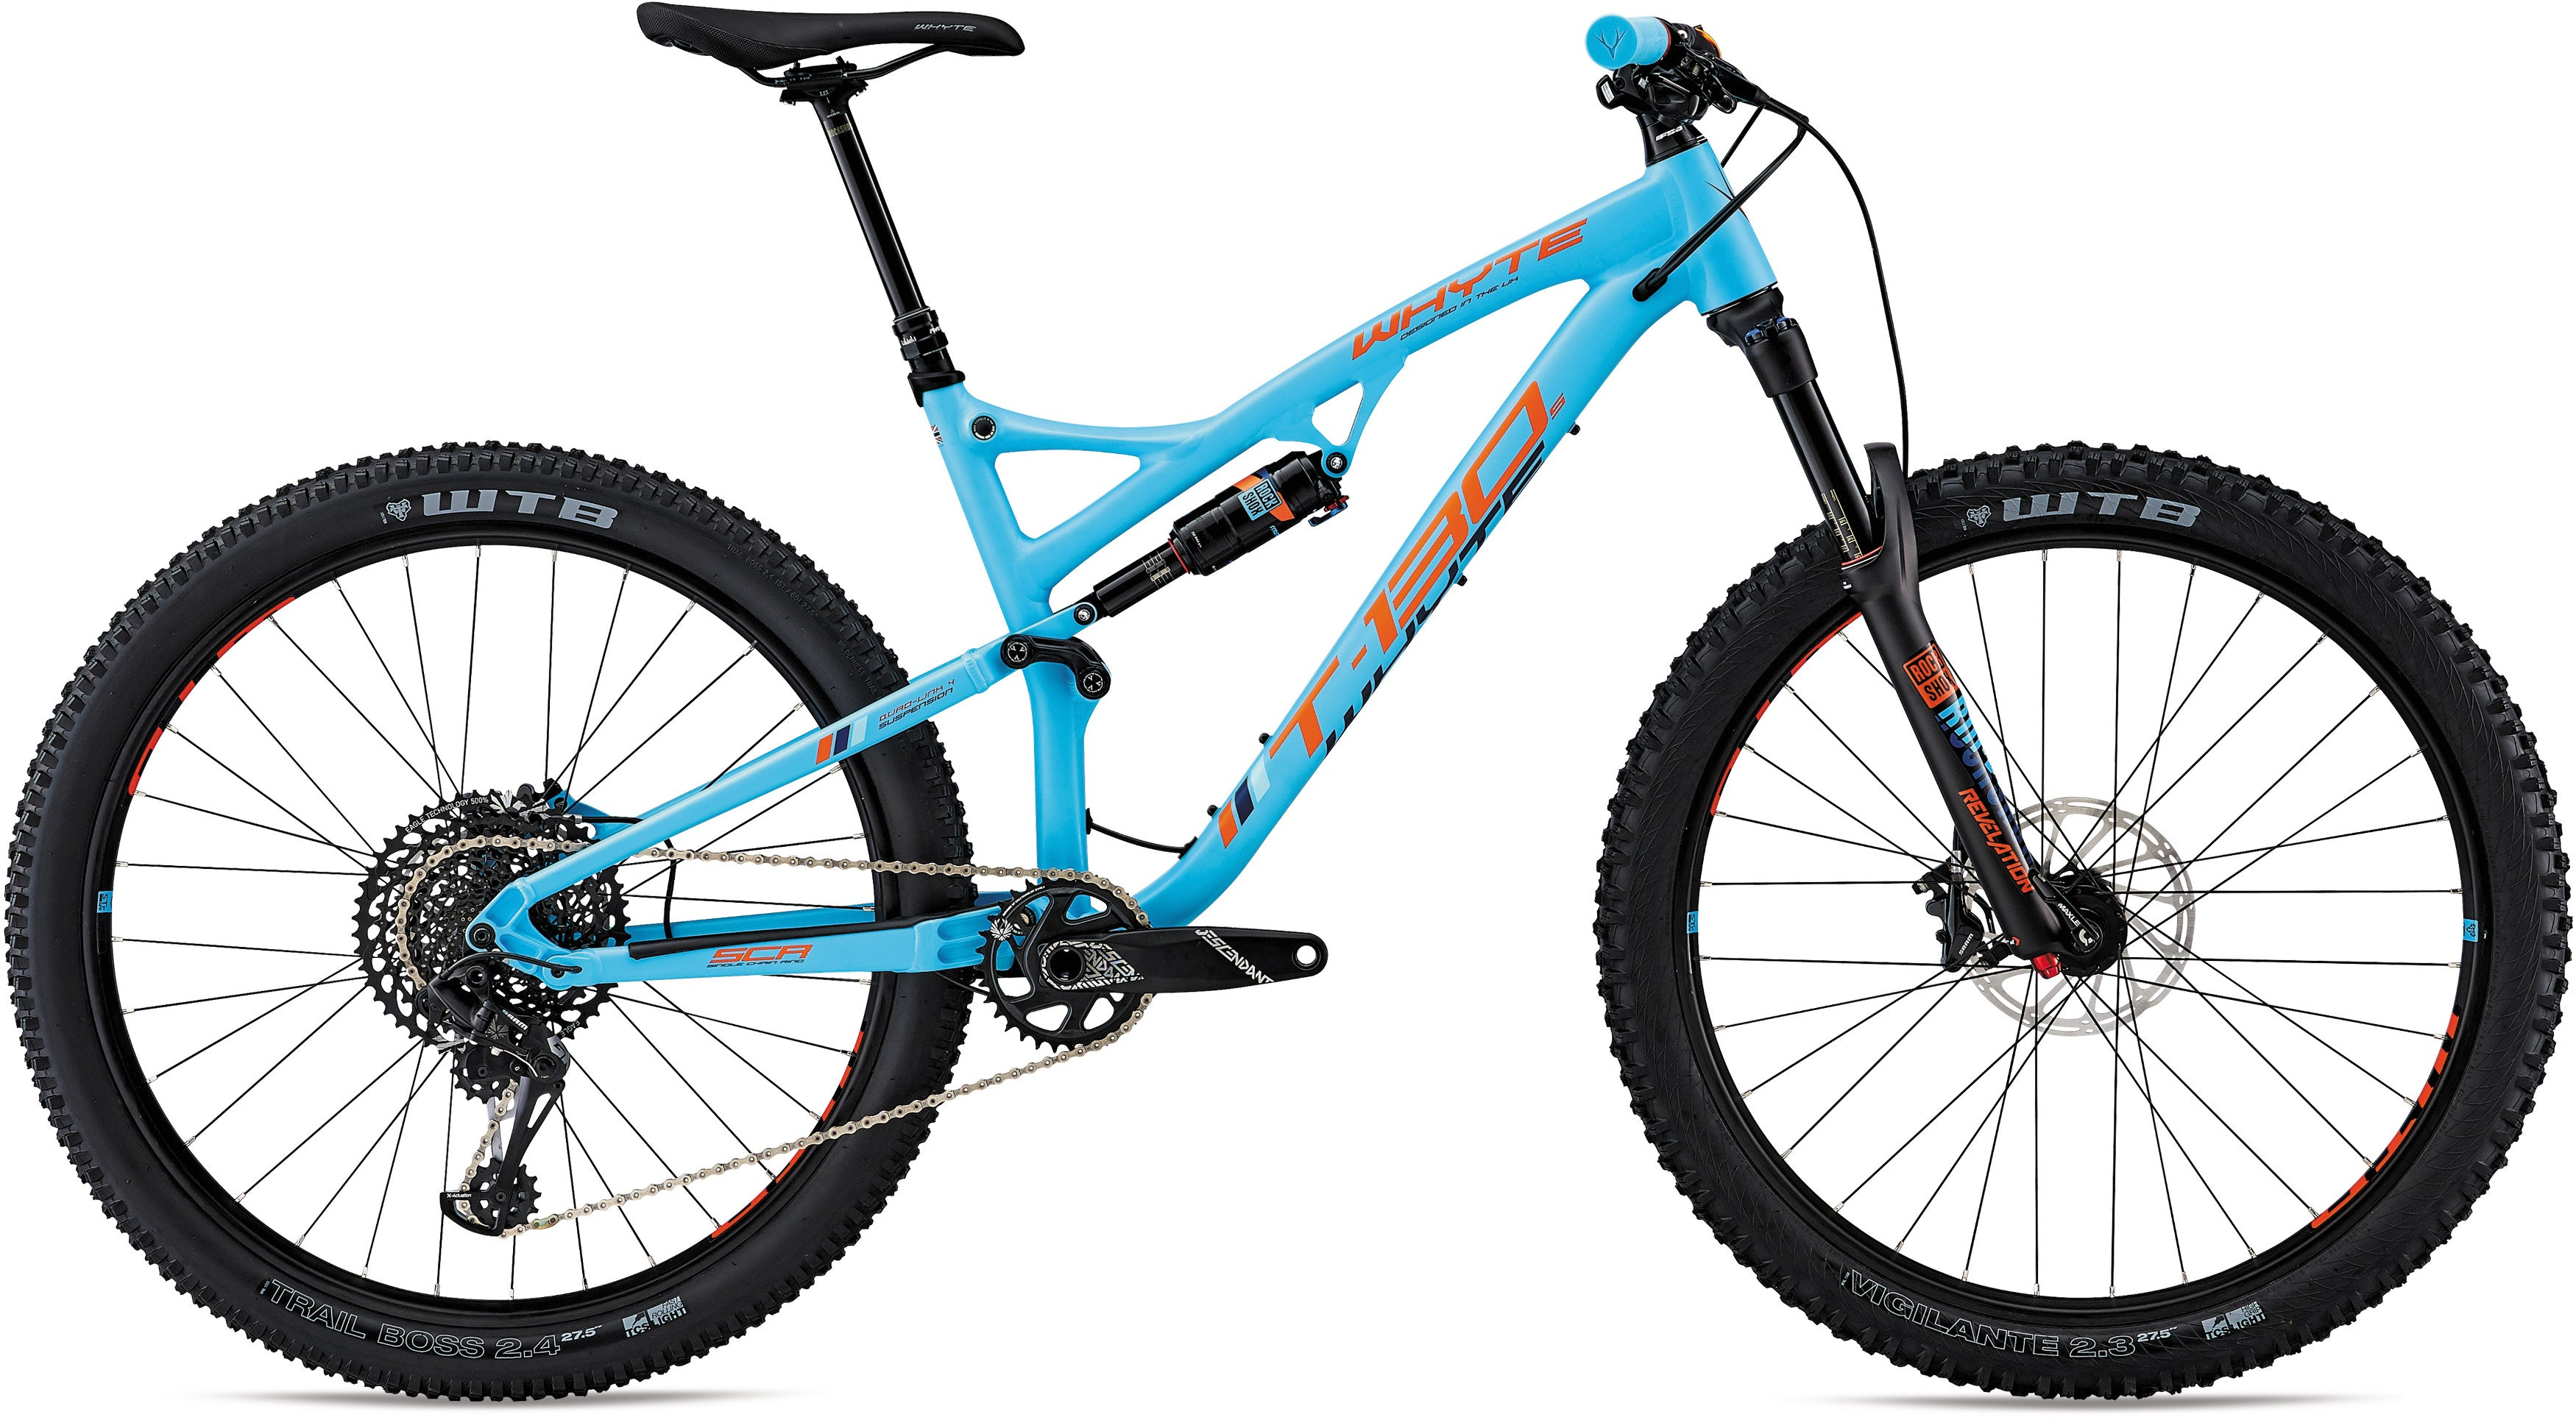 Whyte T-130 S (2018) Review